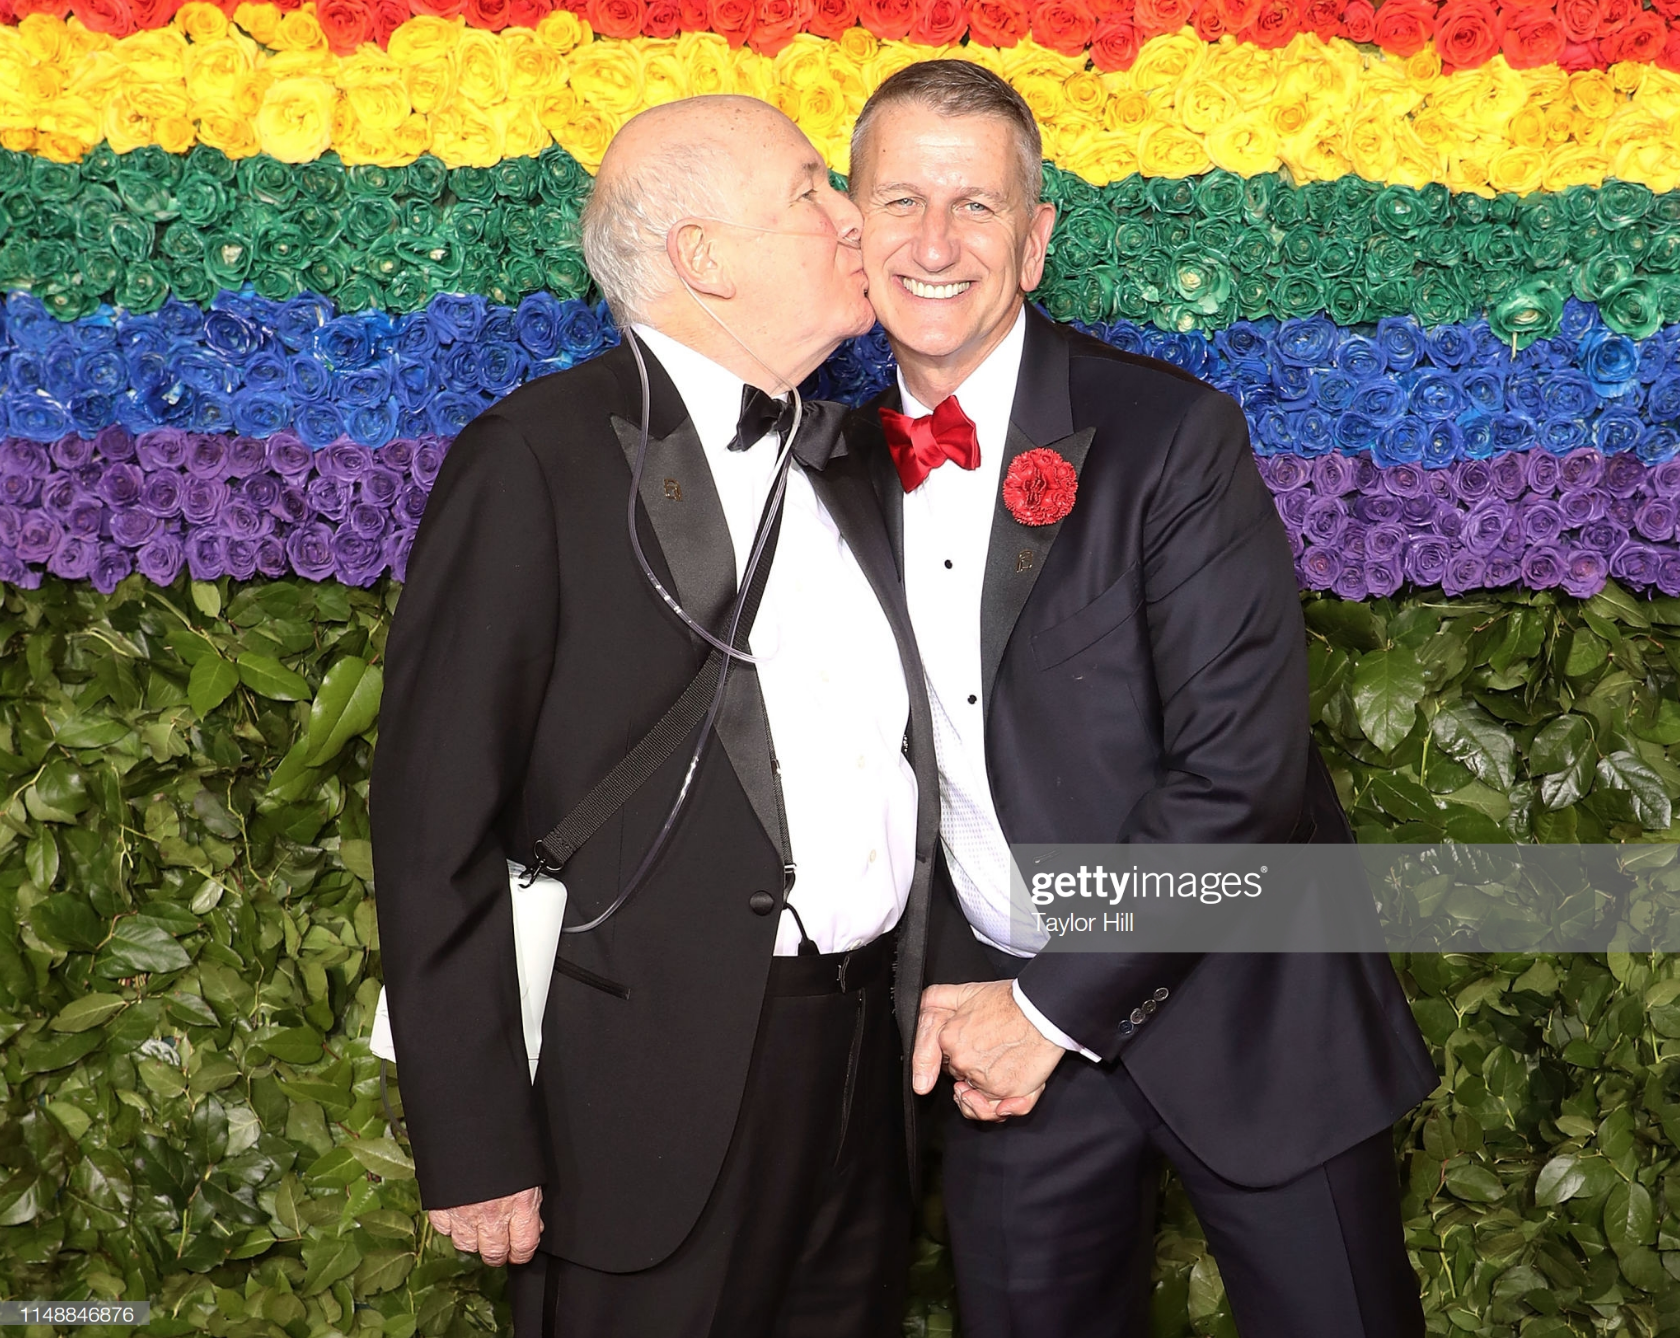 Terrence McNally and Tom Kirdahy attend the 2019 Tony Awards at Radio City Music Hall on June 9, 2019 in New York City